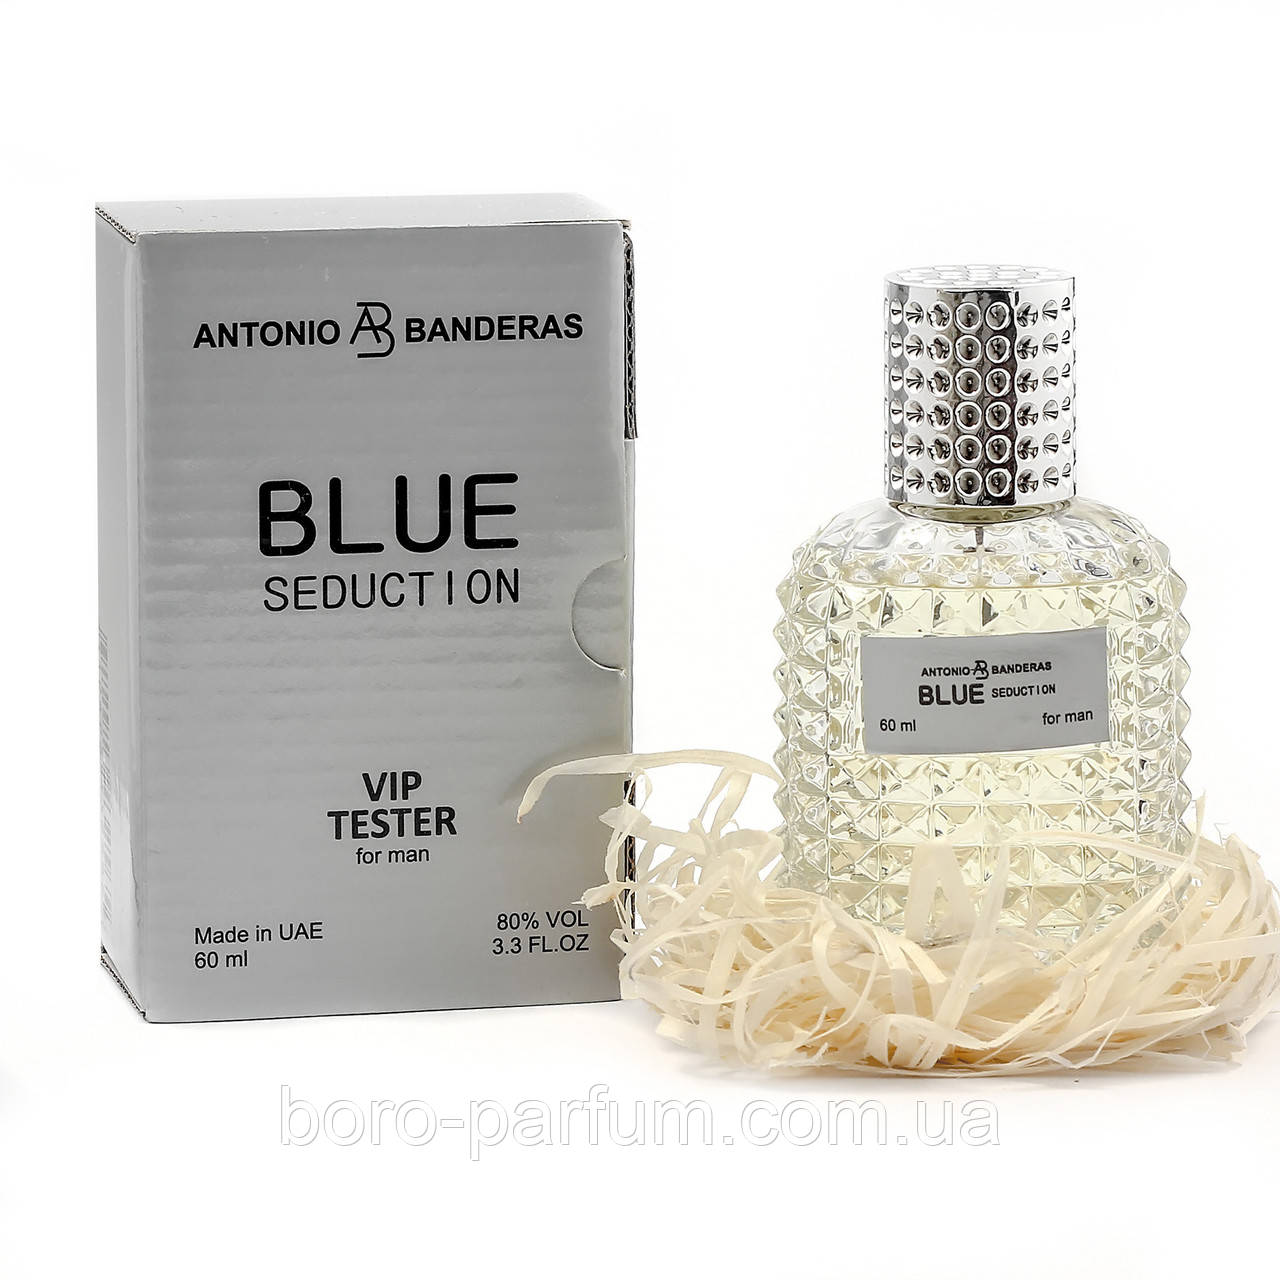 Тестер VIP Antonio Banderas Blue Seduction 60 мл мужской